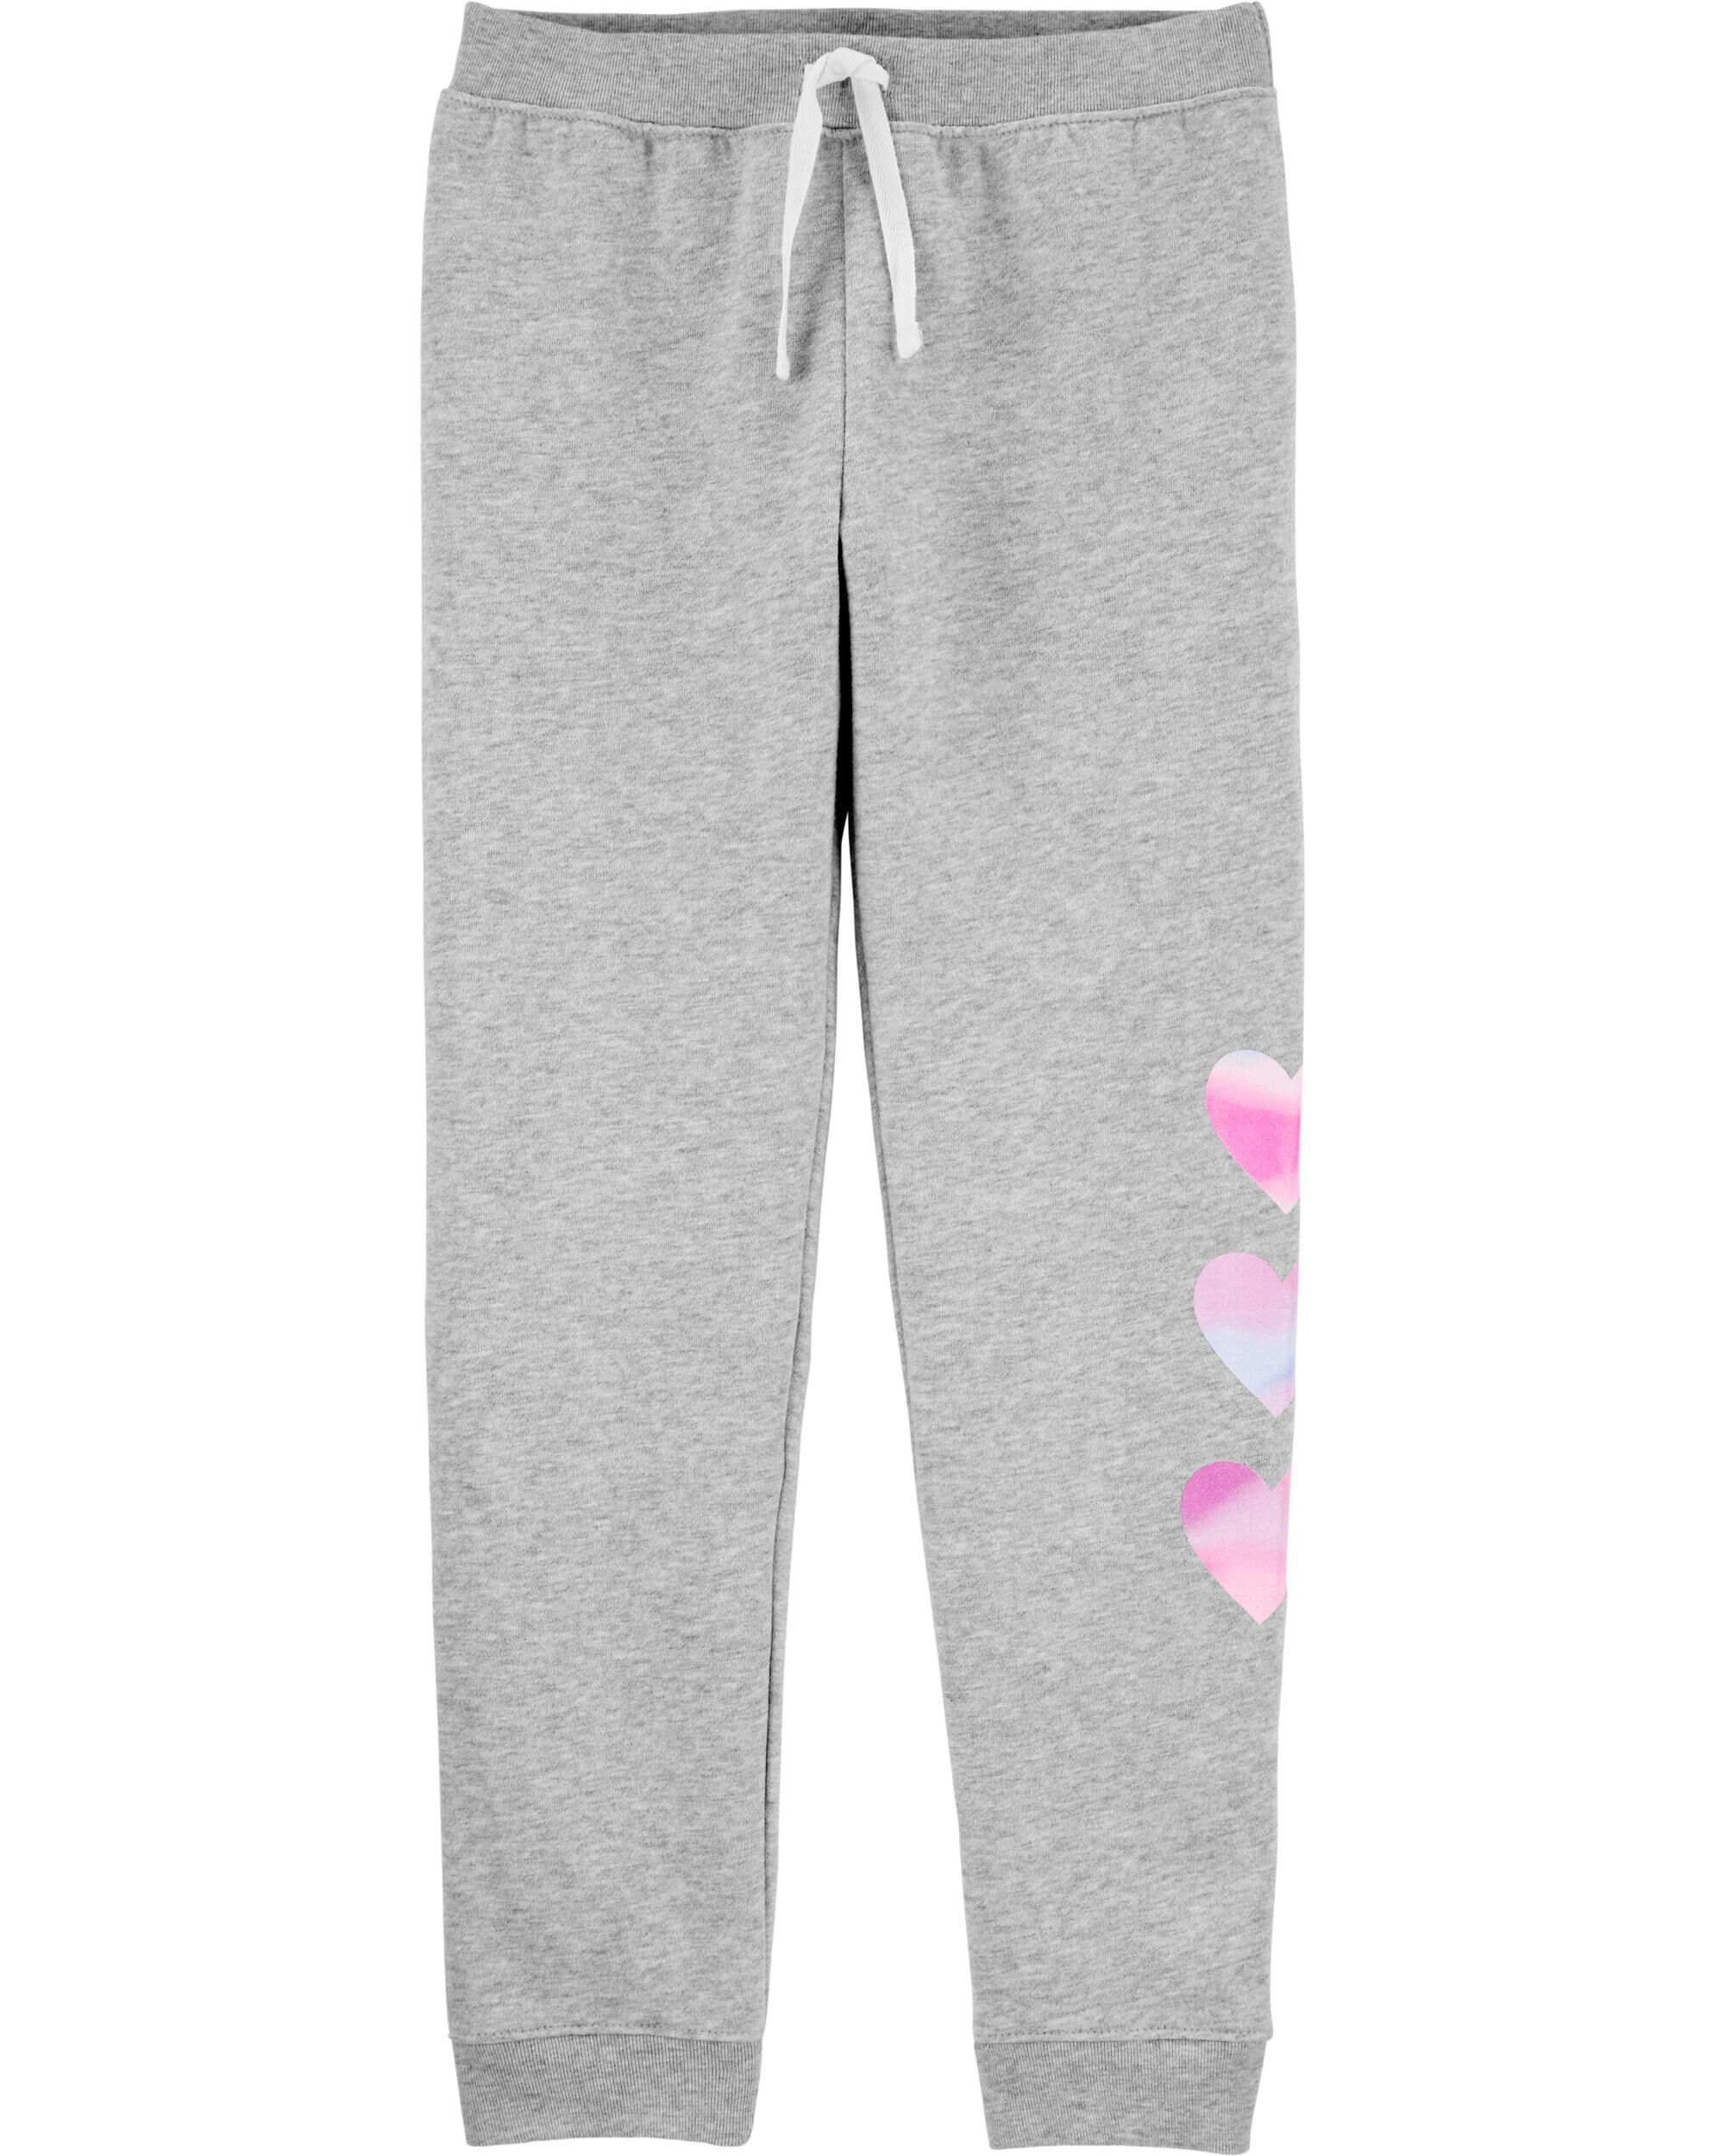 Heart Pull-On Fleece Joggers